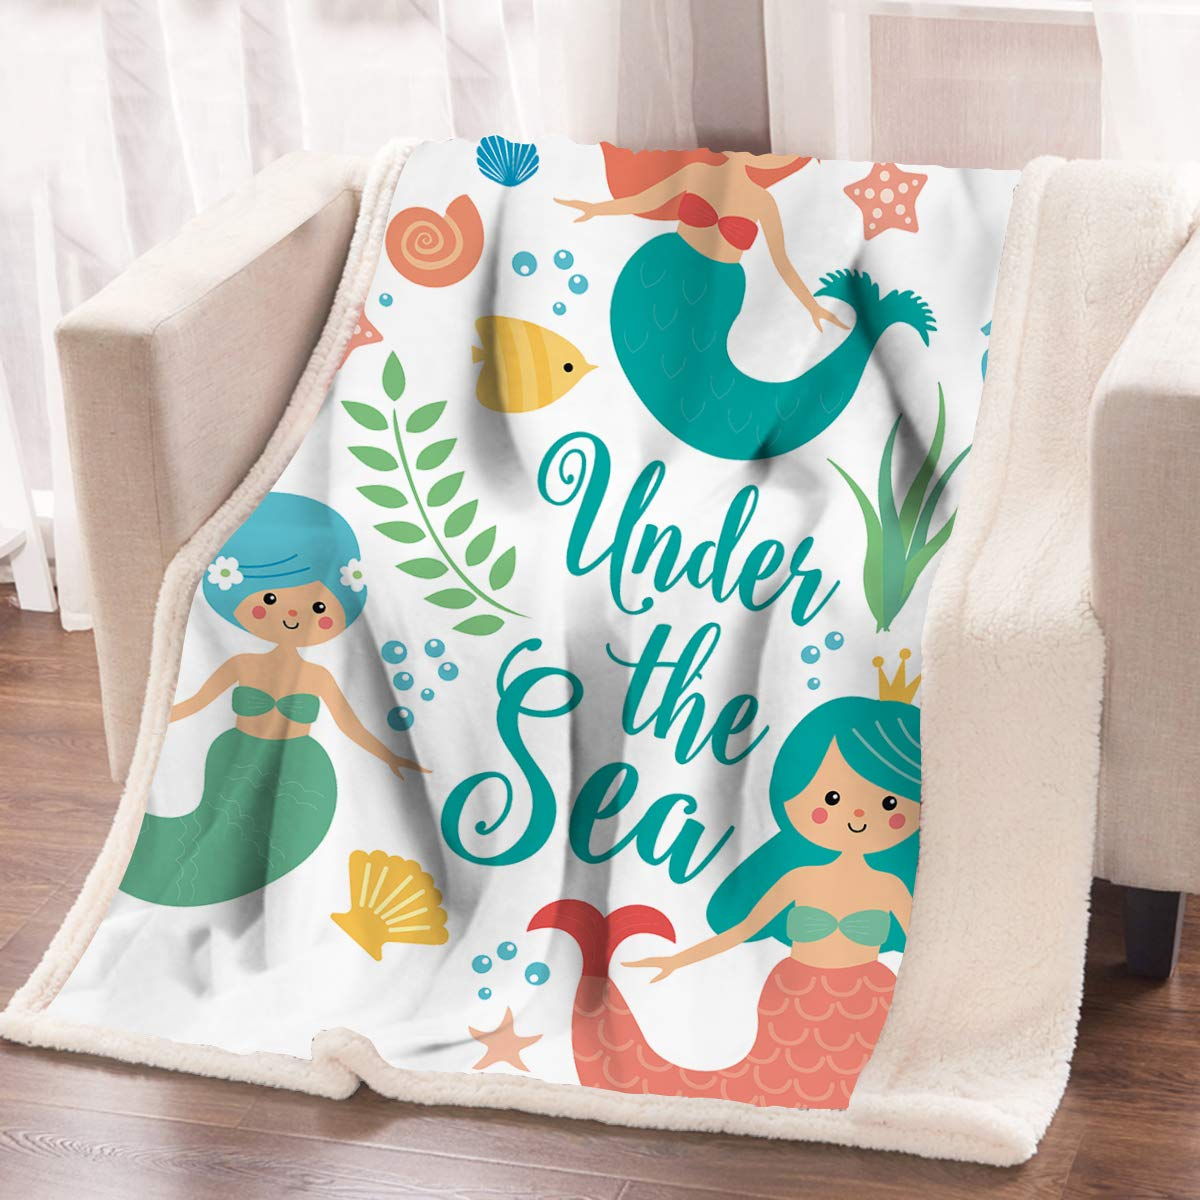 ARIGHTEX Mermaid Print Blanket Girls Fleece Throw Blanket Under The Sea Soft Blanket Teal Kids Sherpa Blanket (50 x 60 Inches) by ARIGHTEX